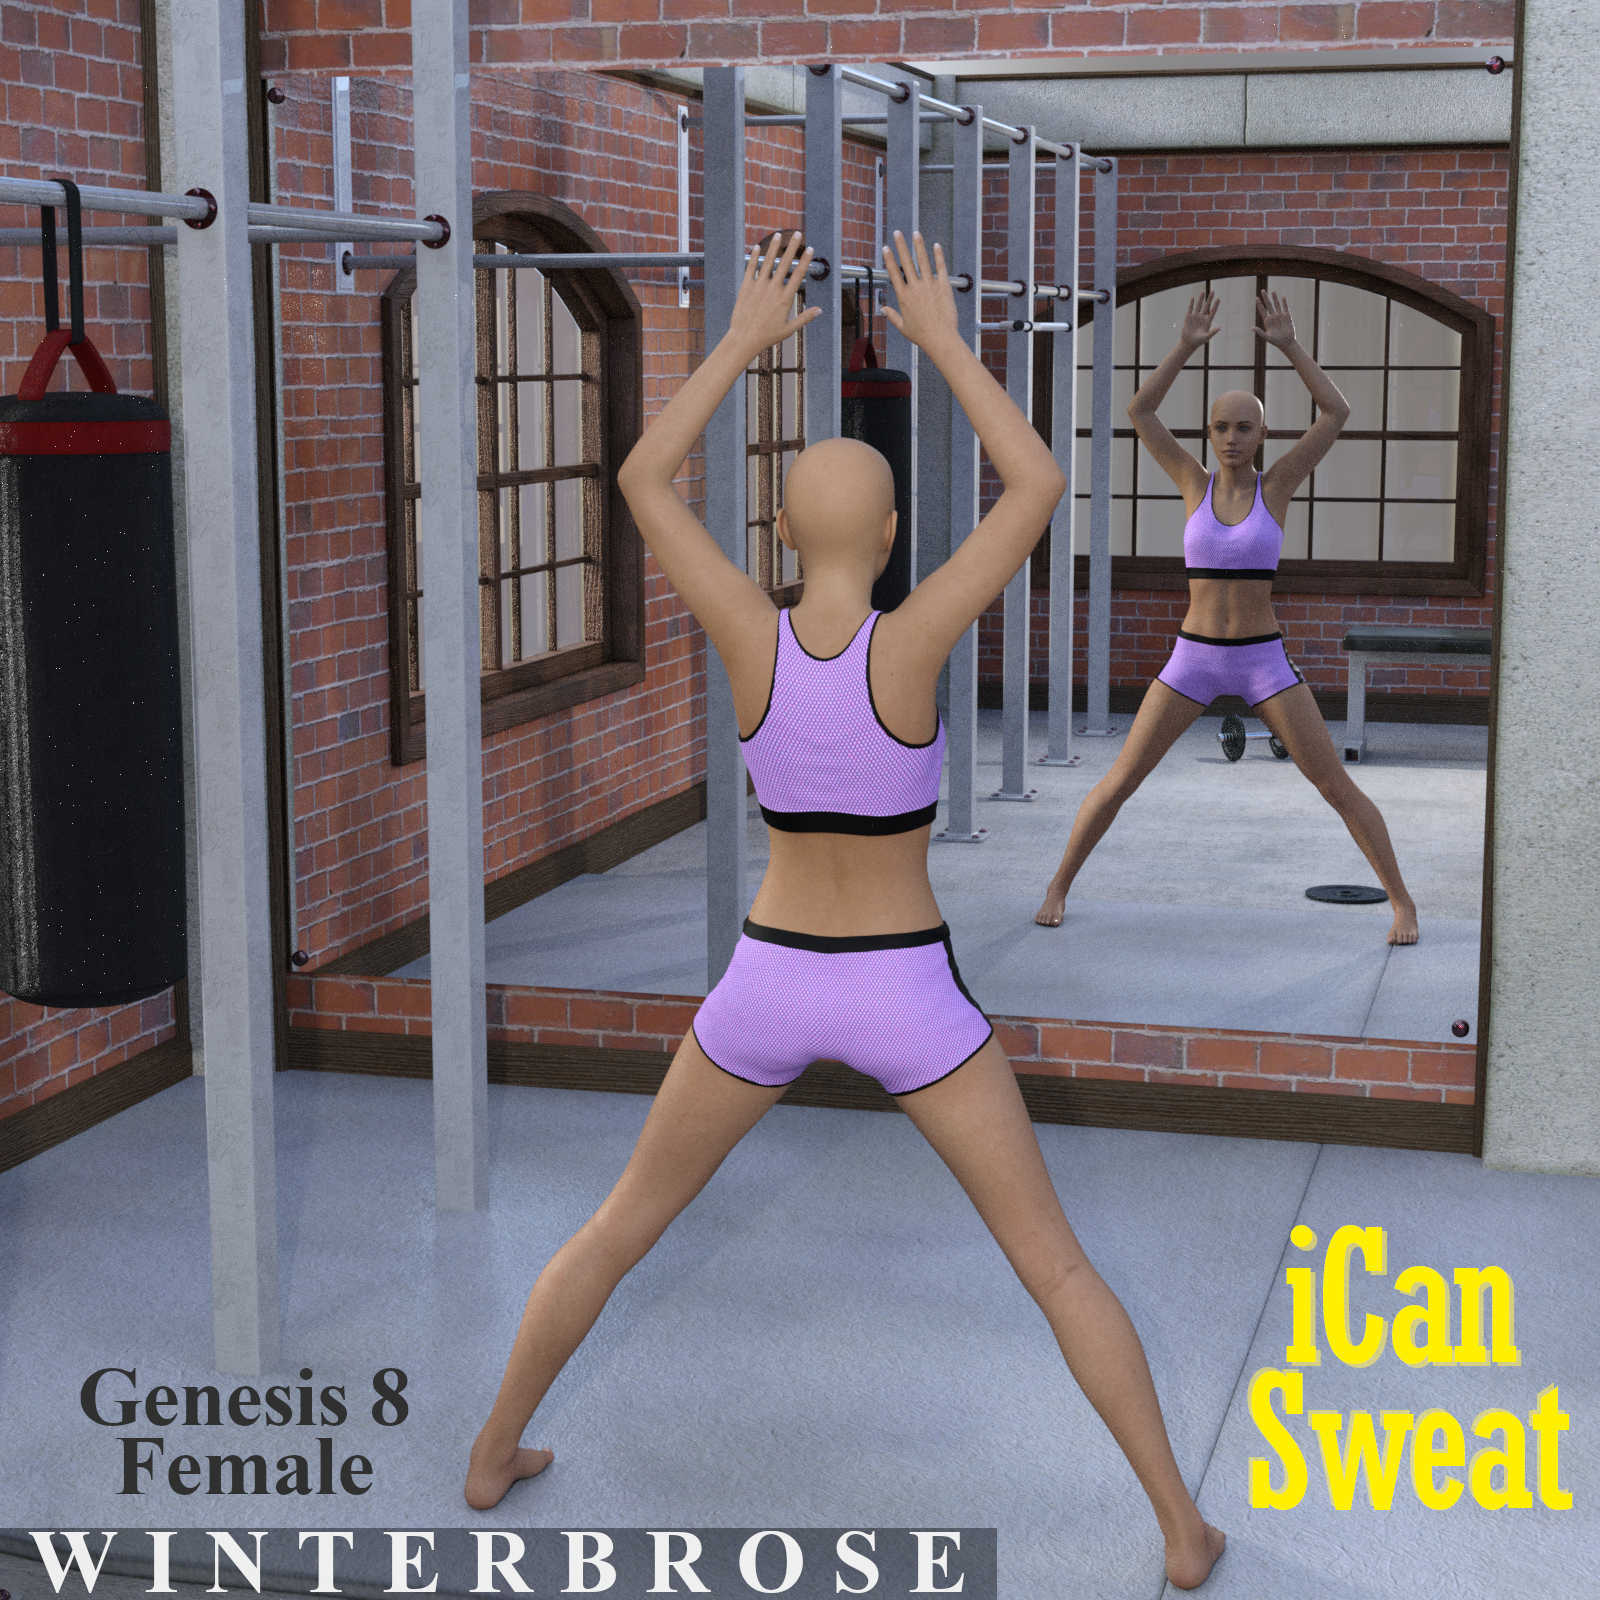 iCan SWEAT Poses for Genesis 8 Female (G8F) in Daz Studio by Winterbrose